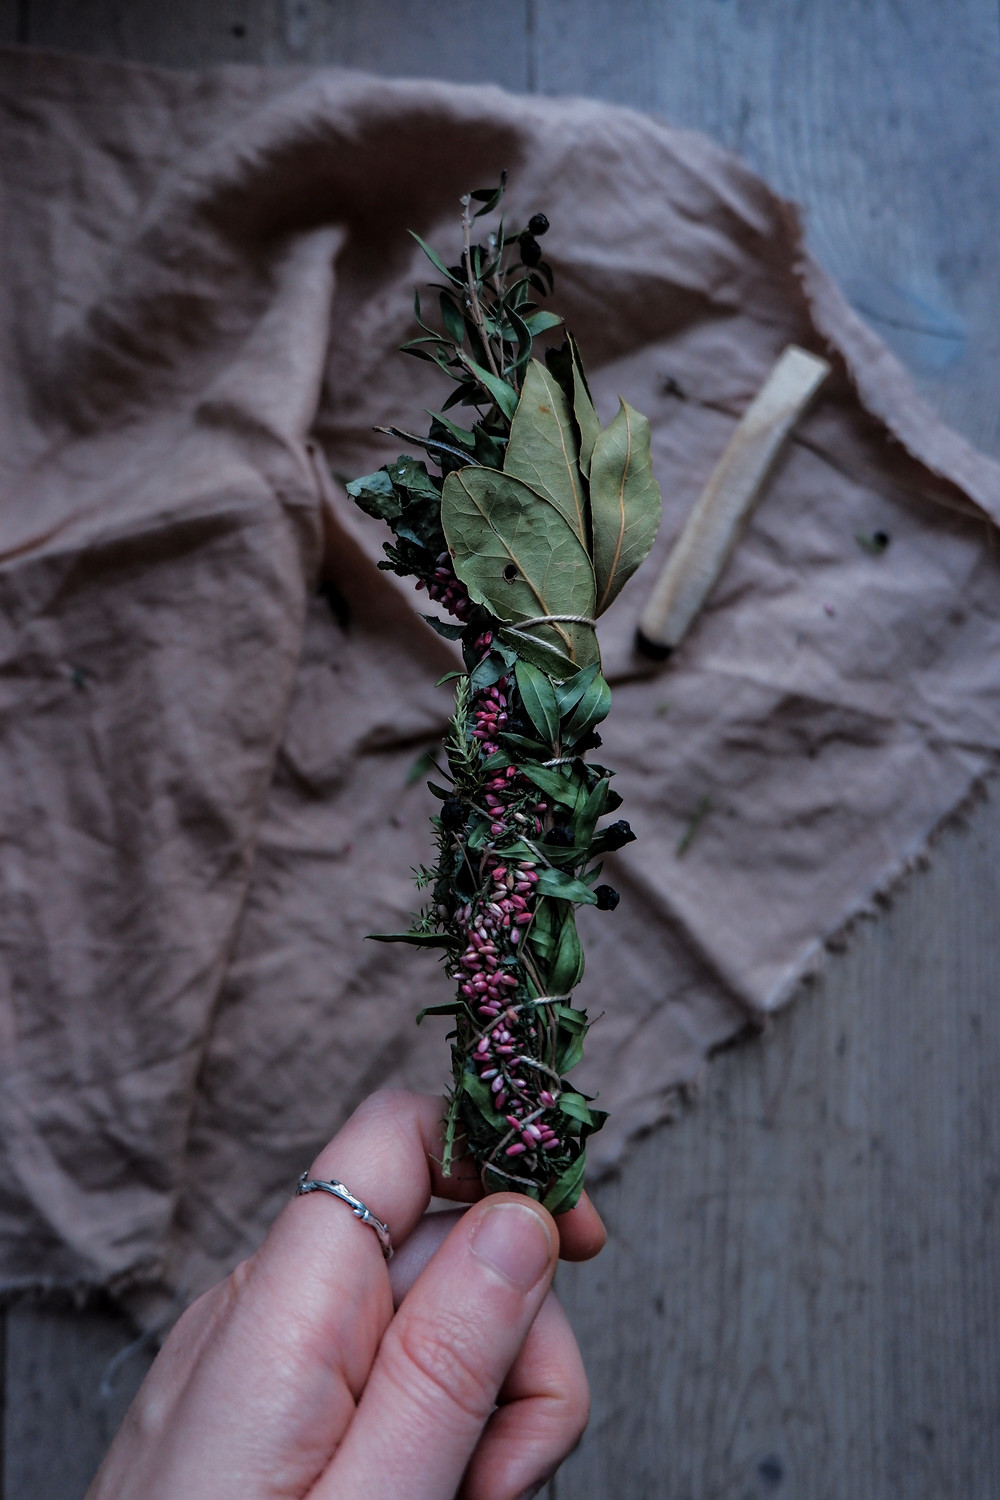 Smudging bundles can be made out of many different types of plants so playing around with what grows sustainably is the best method to make your own bundles.